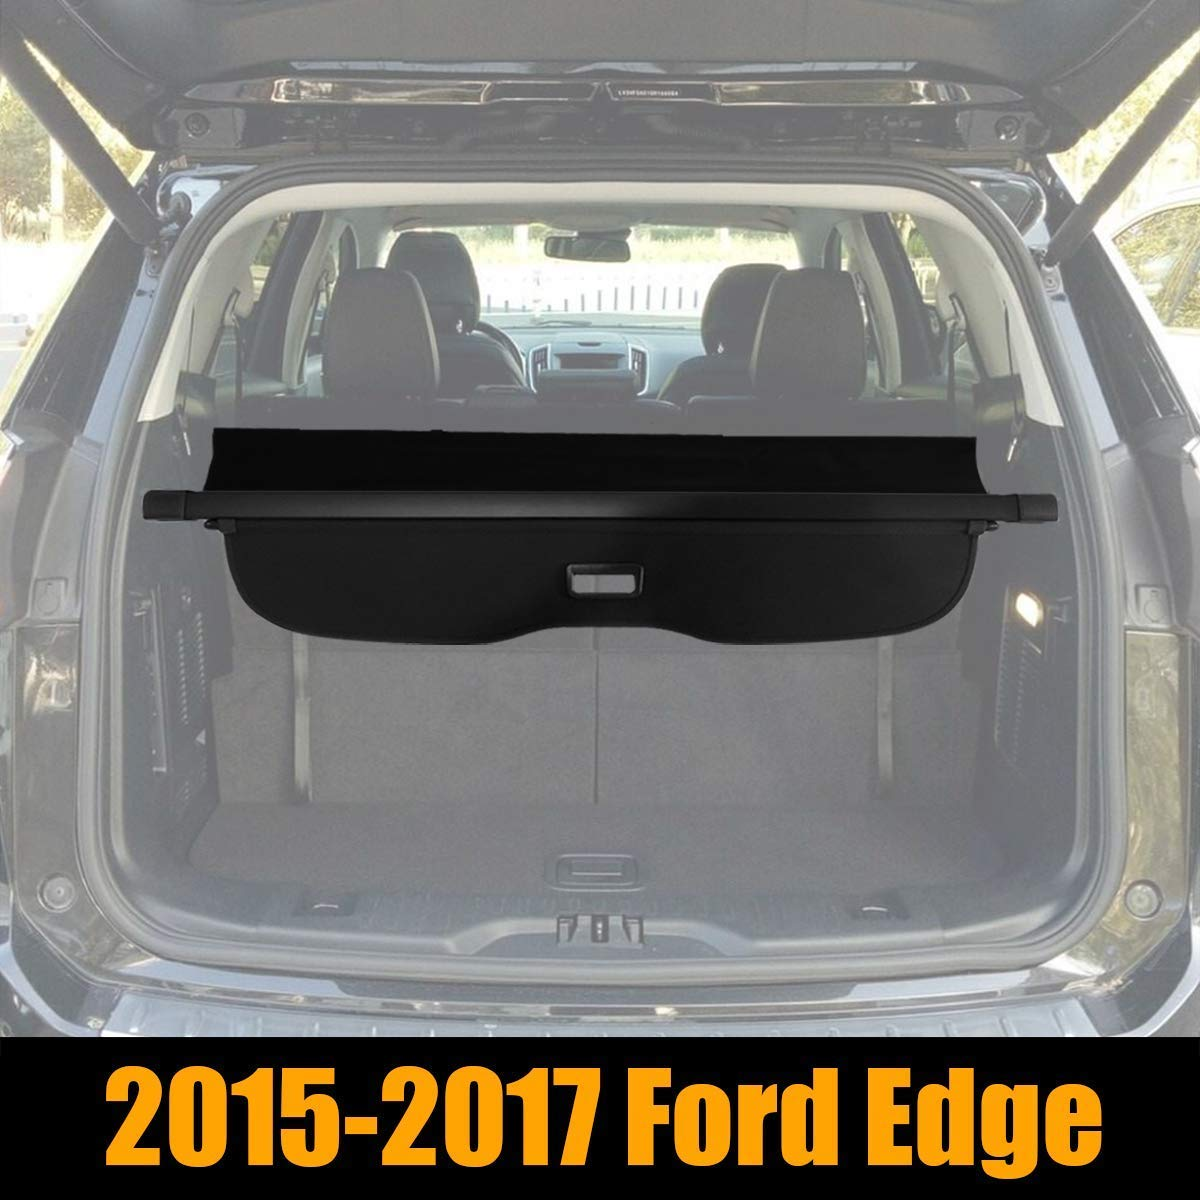 Retractable Cargo Cover Fits 2015-2017 Ford Edge Trunk Shielding Shade Cargo Luggage Cover